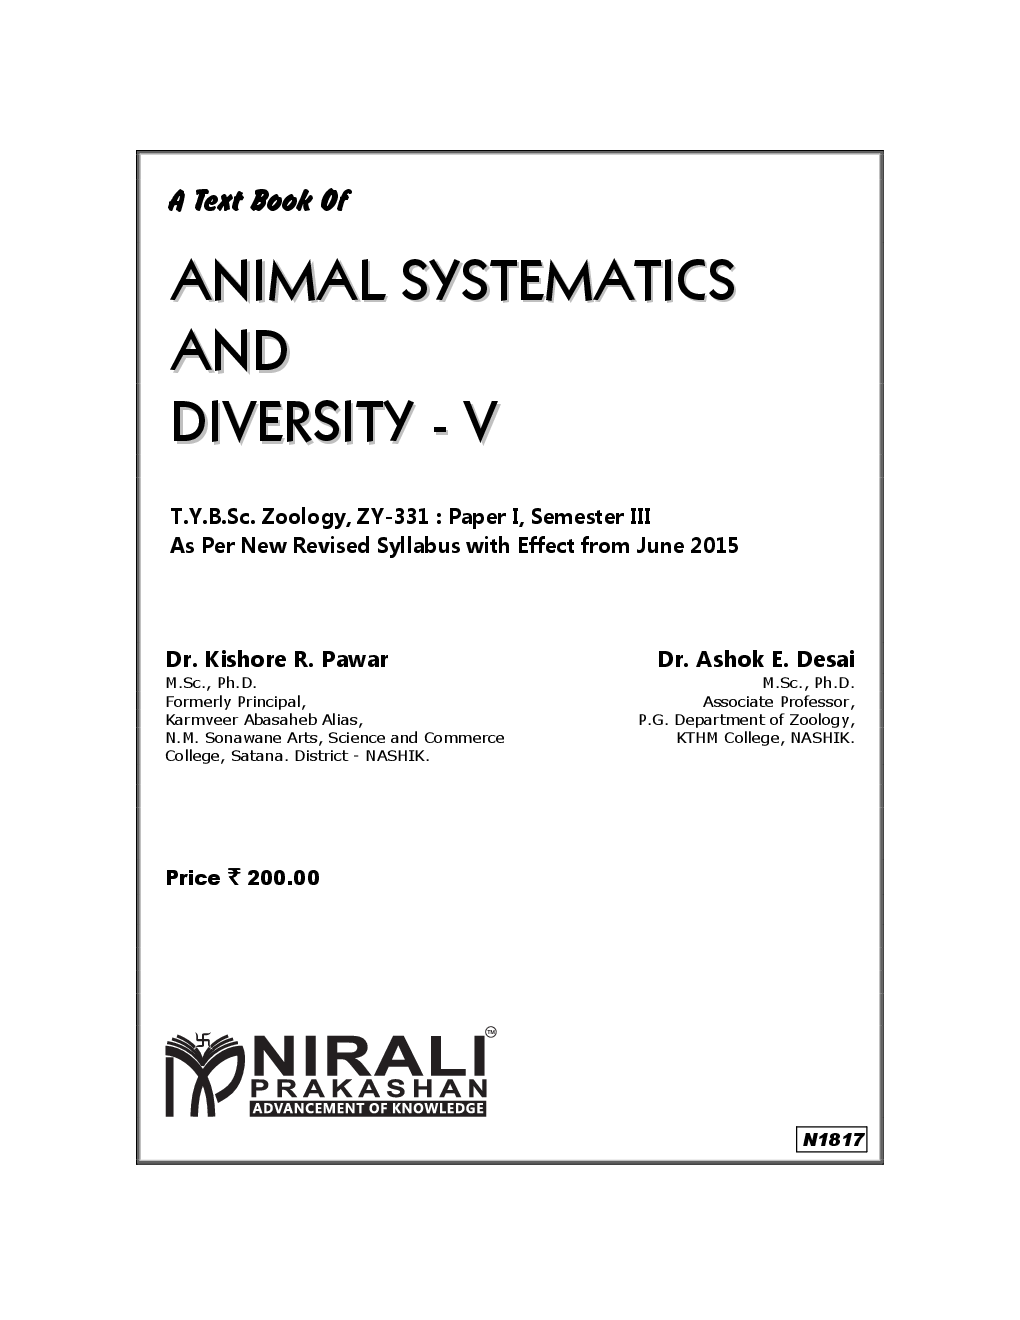 Animal Systematics And Diversity - V - Page 2